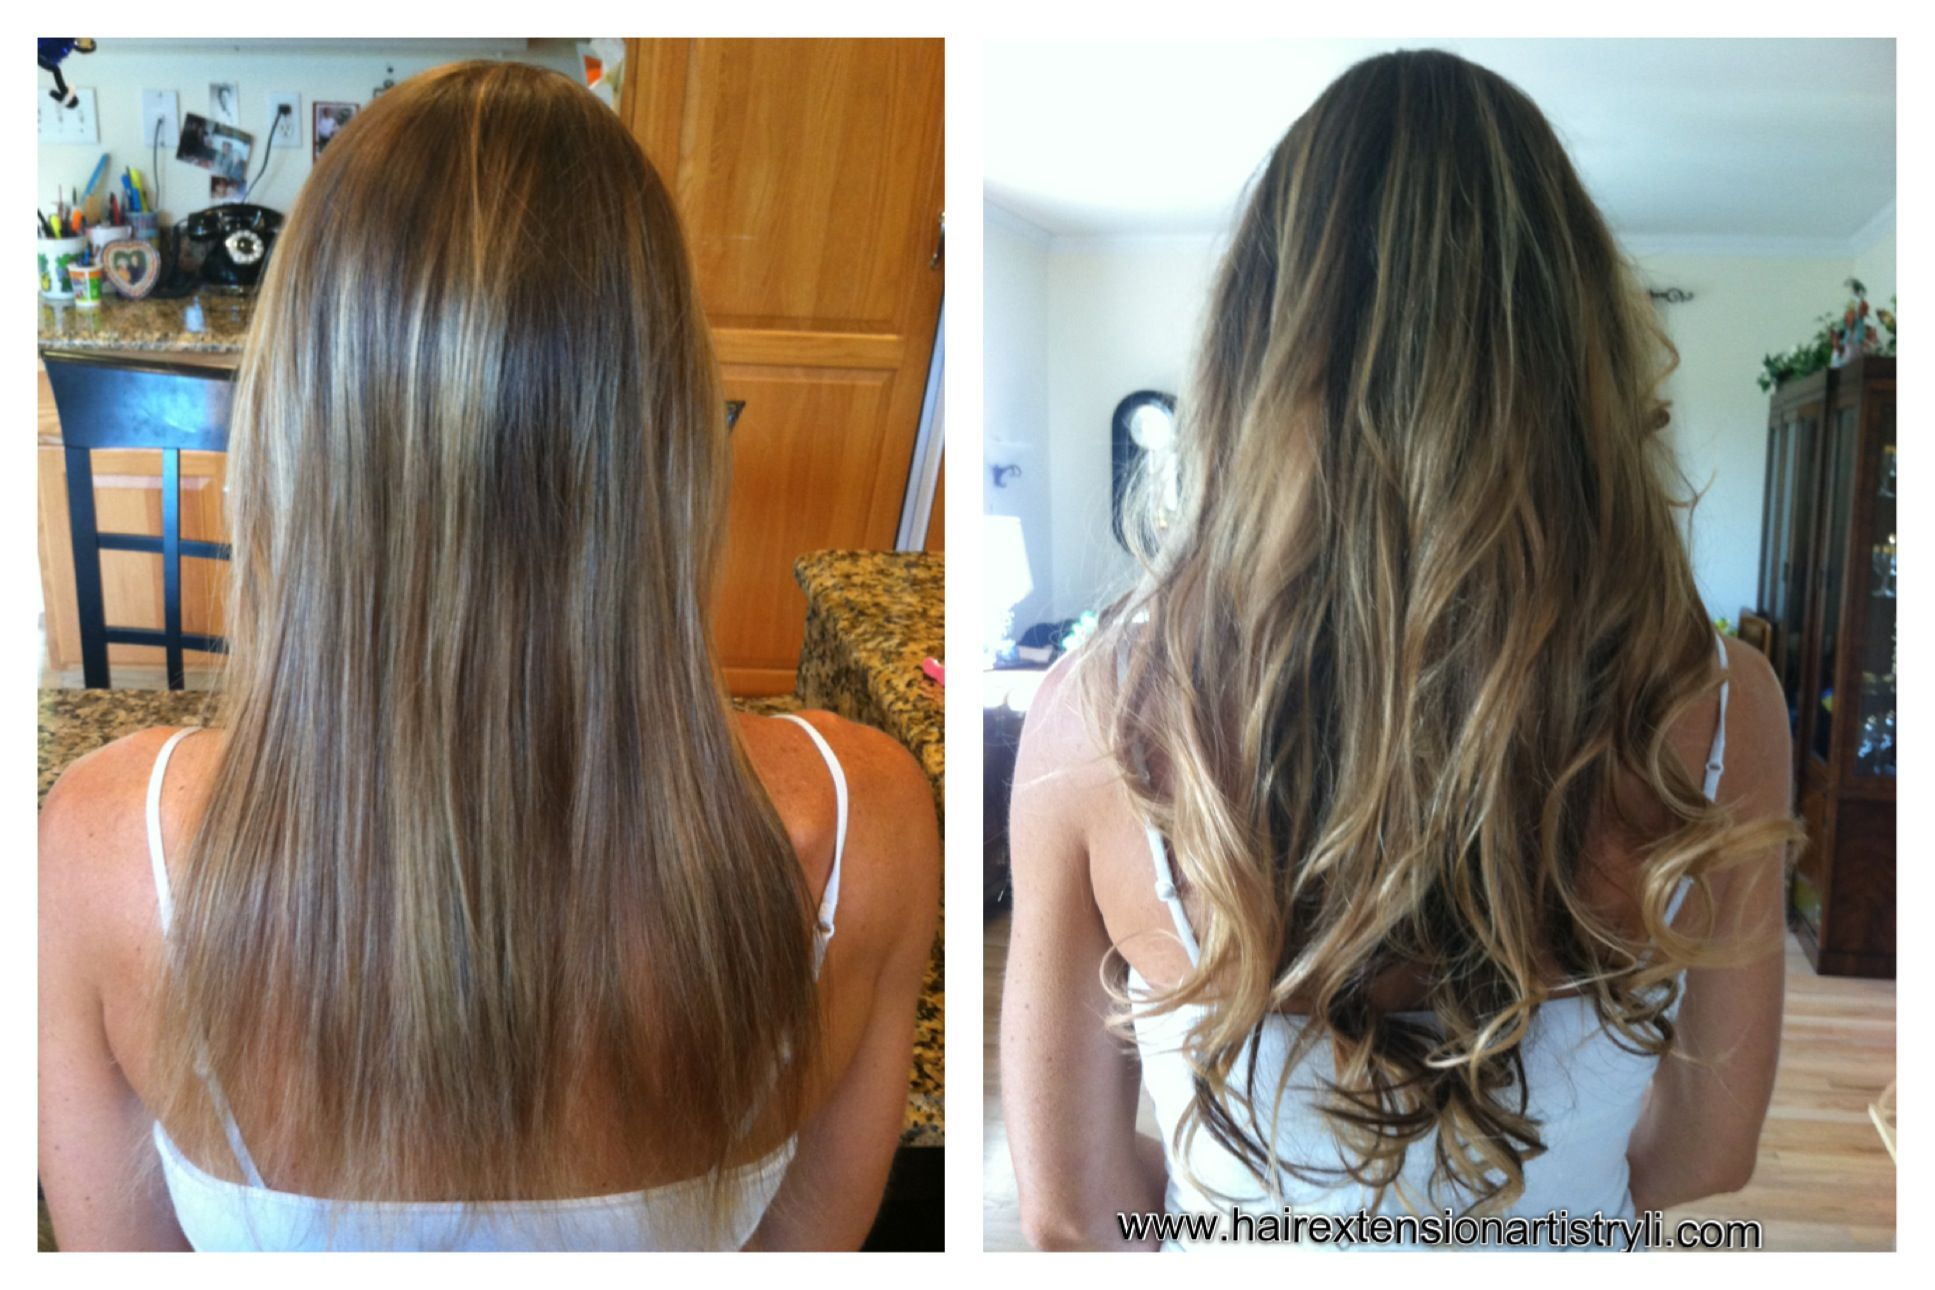 Hollywood makeover with ombre hair extensions long island hair hollywood makeover with ombre hair extensions long island hair extension artist pmusecretfo Gallery